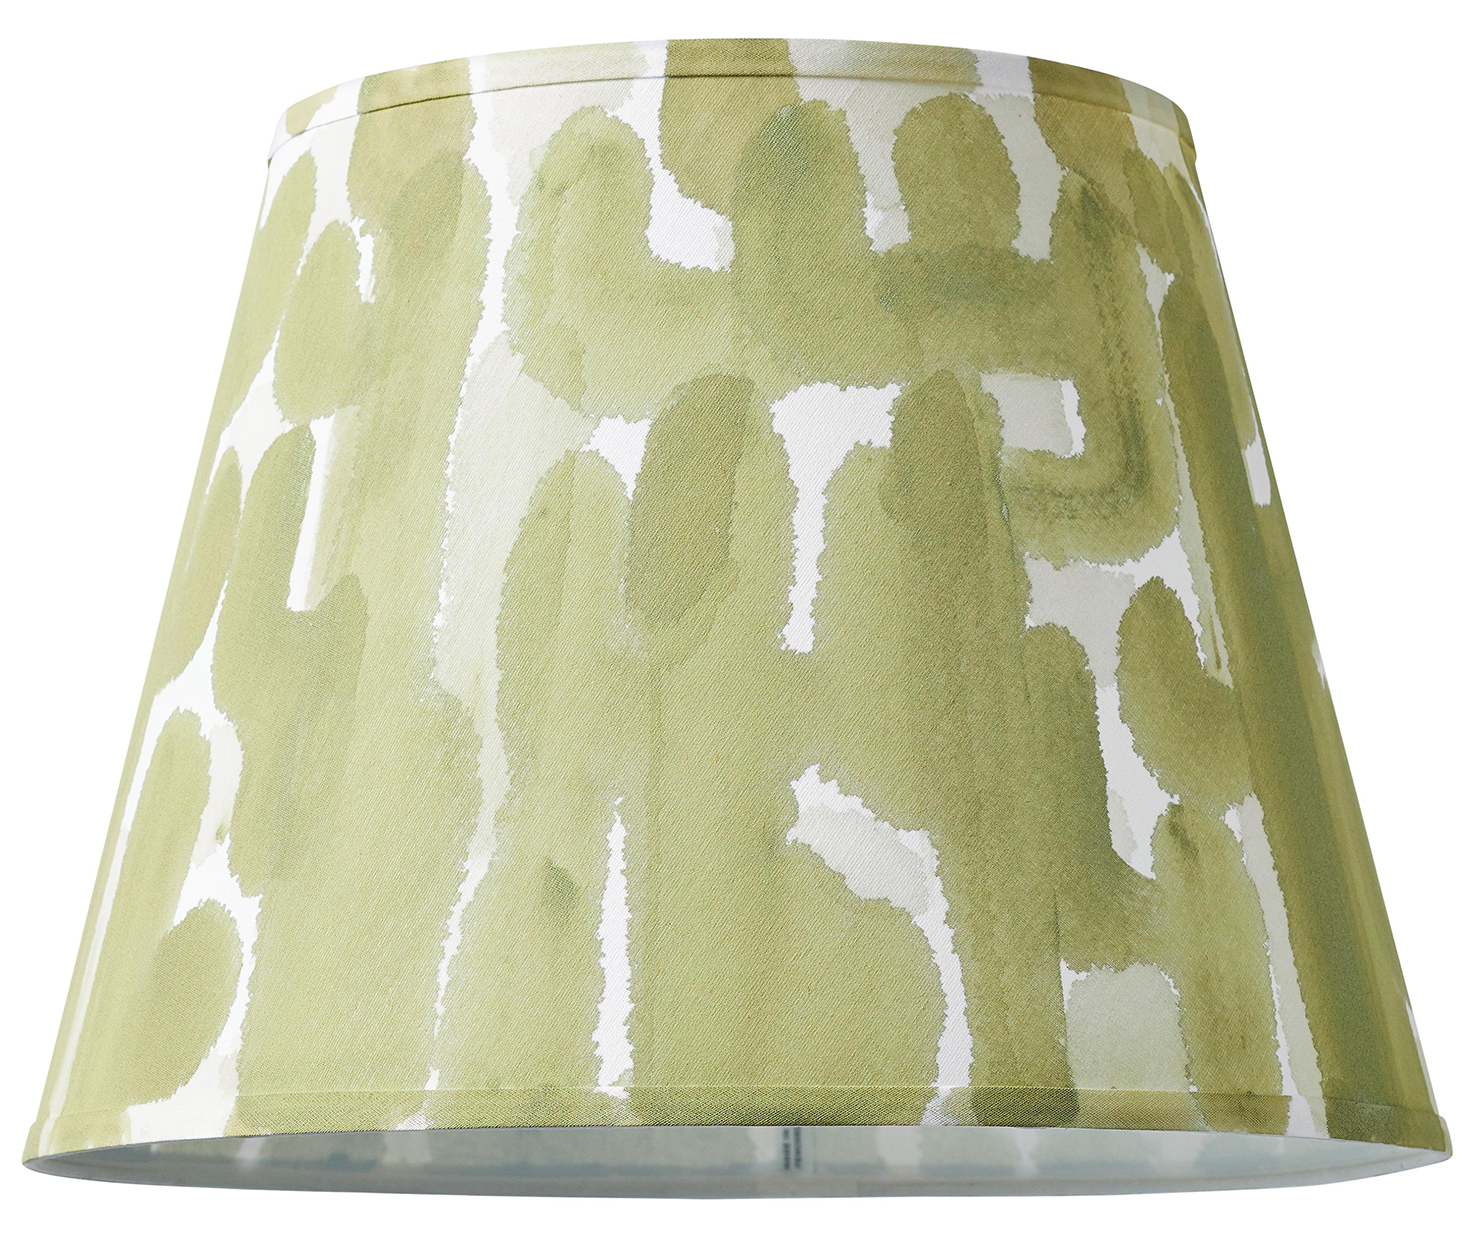 lampshade with painted food coloring-based green watercolor